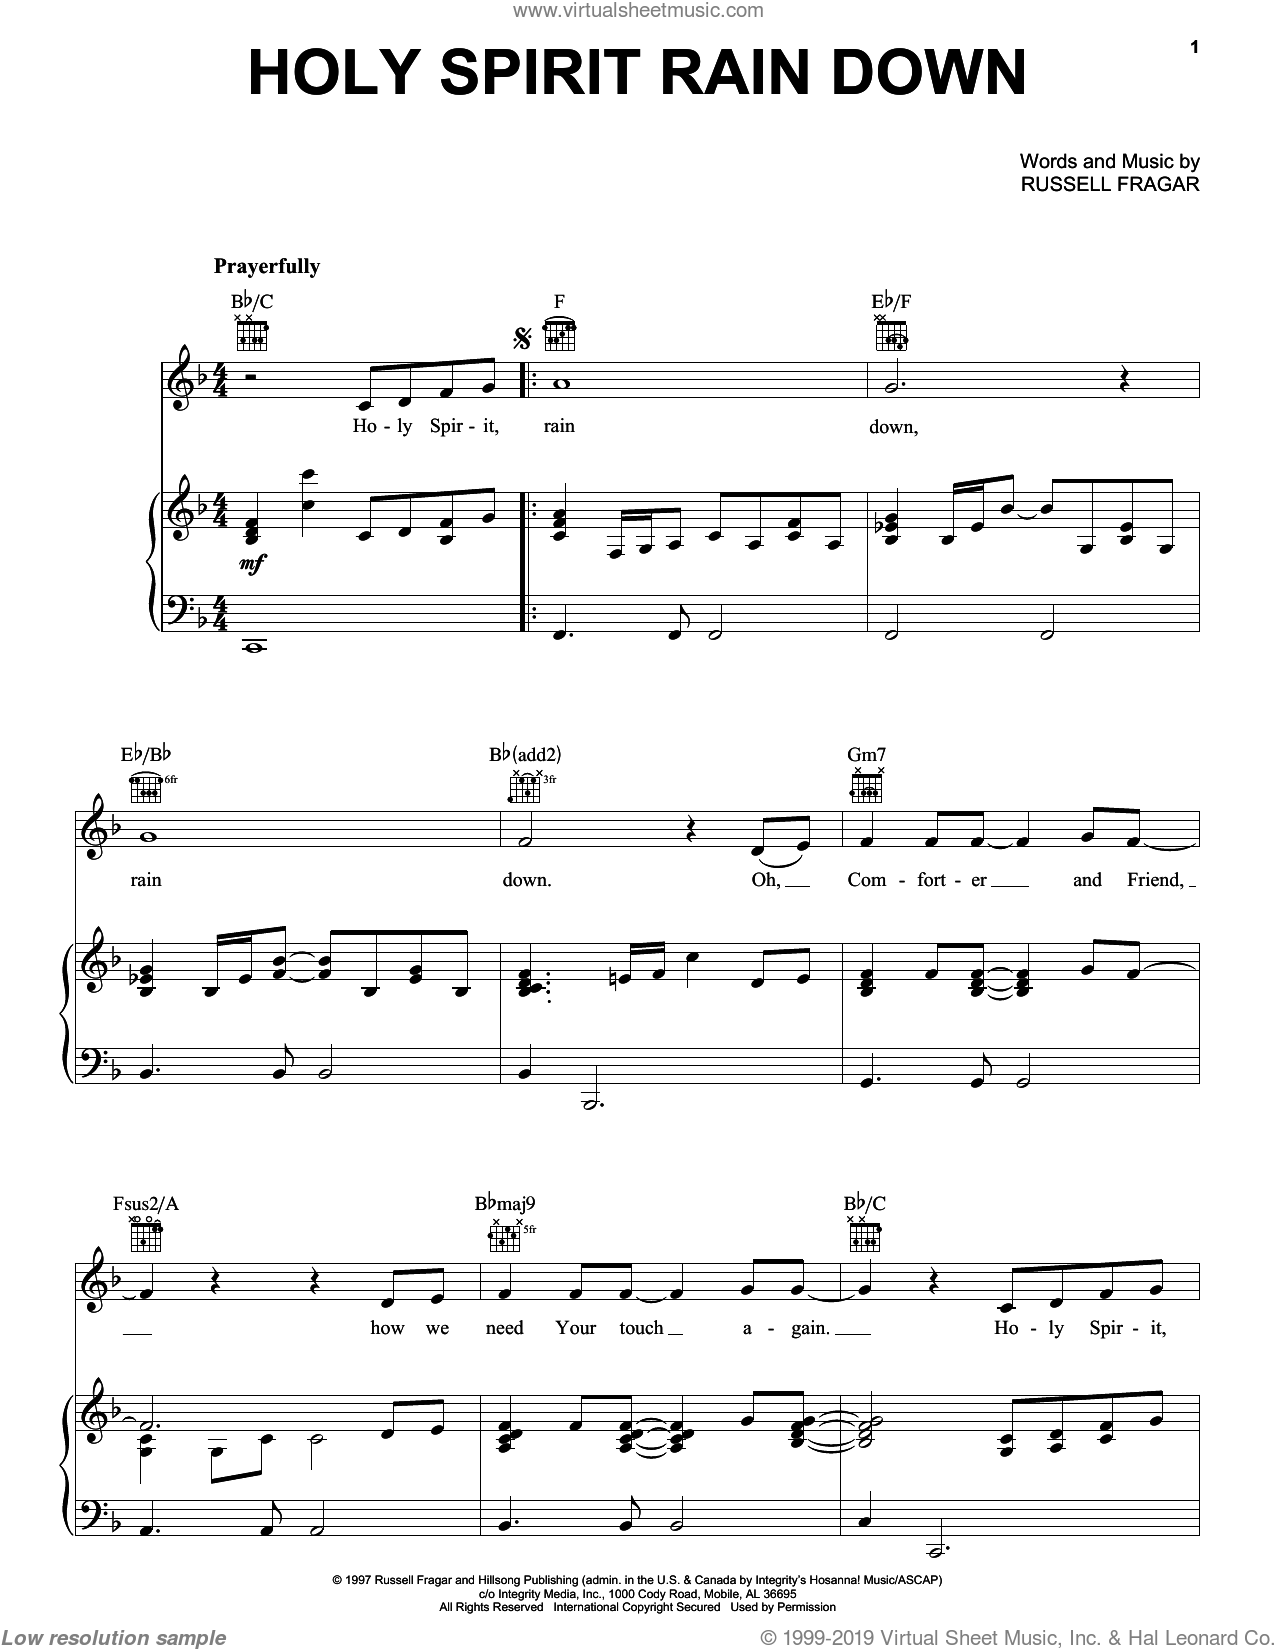 Holy Spirit Rain Down sheet music for voice, piano or guitar by Russell Fragar. Score Image Preview.